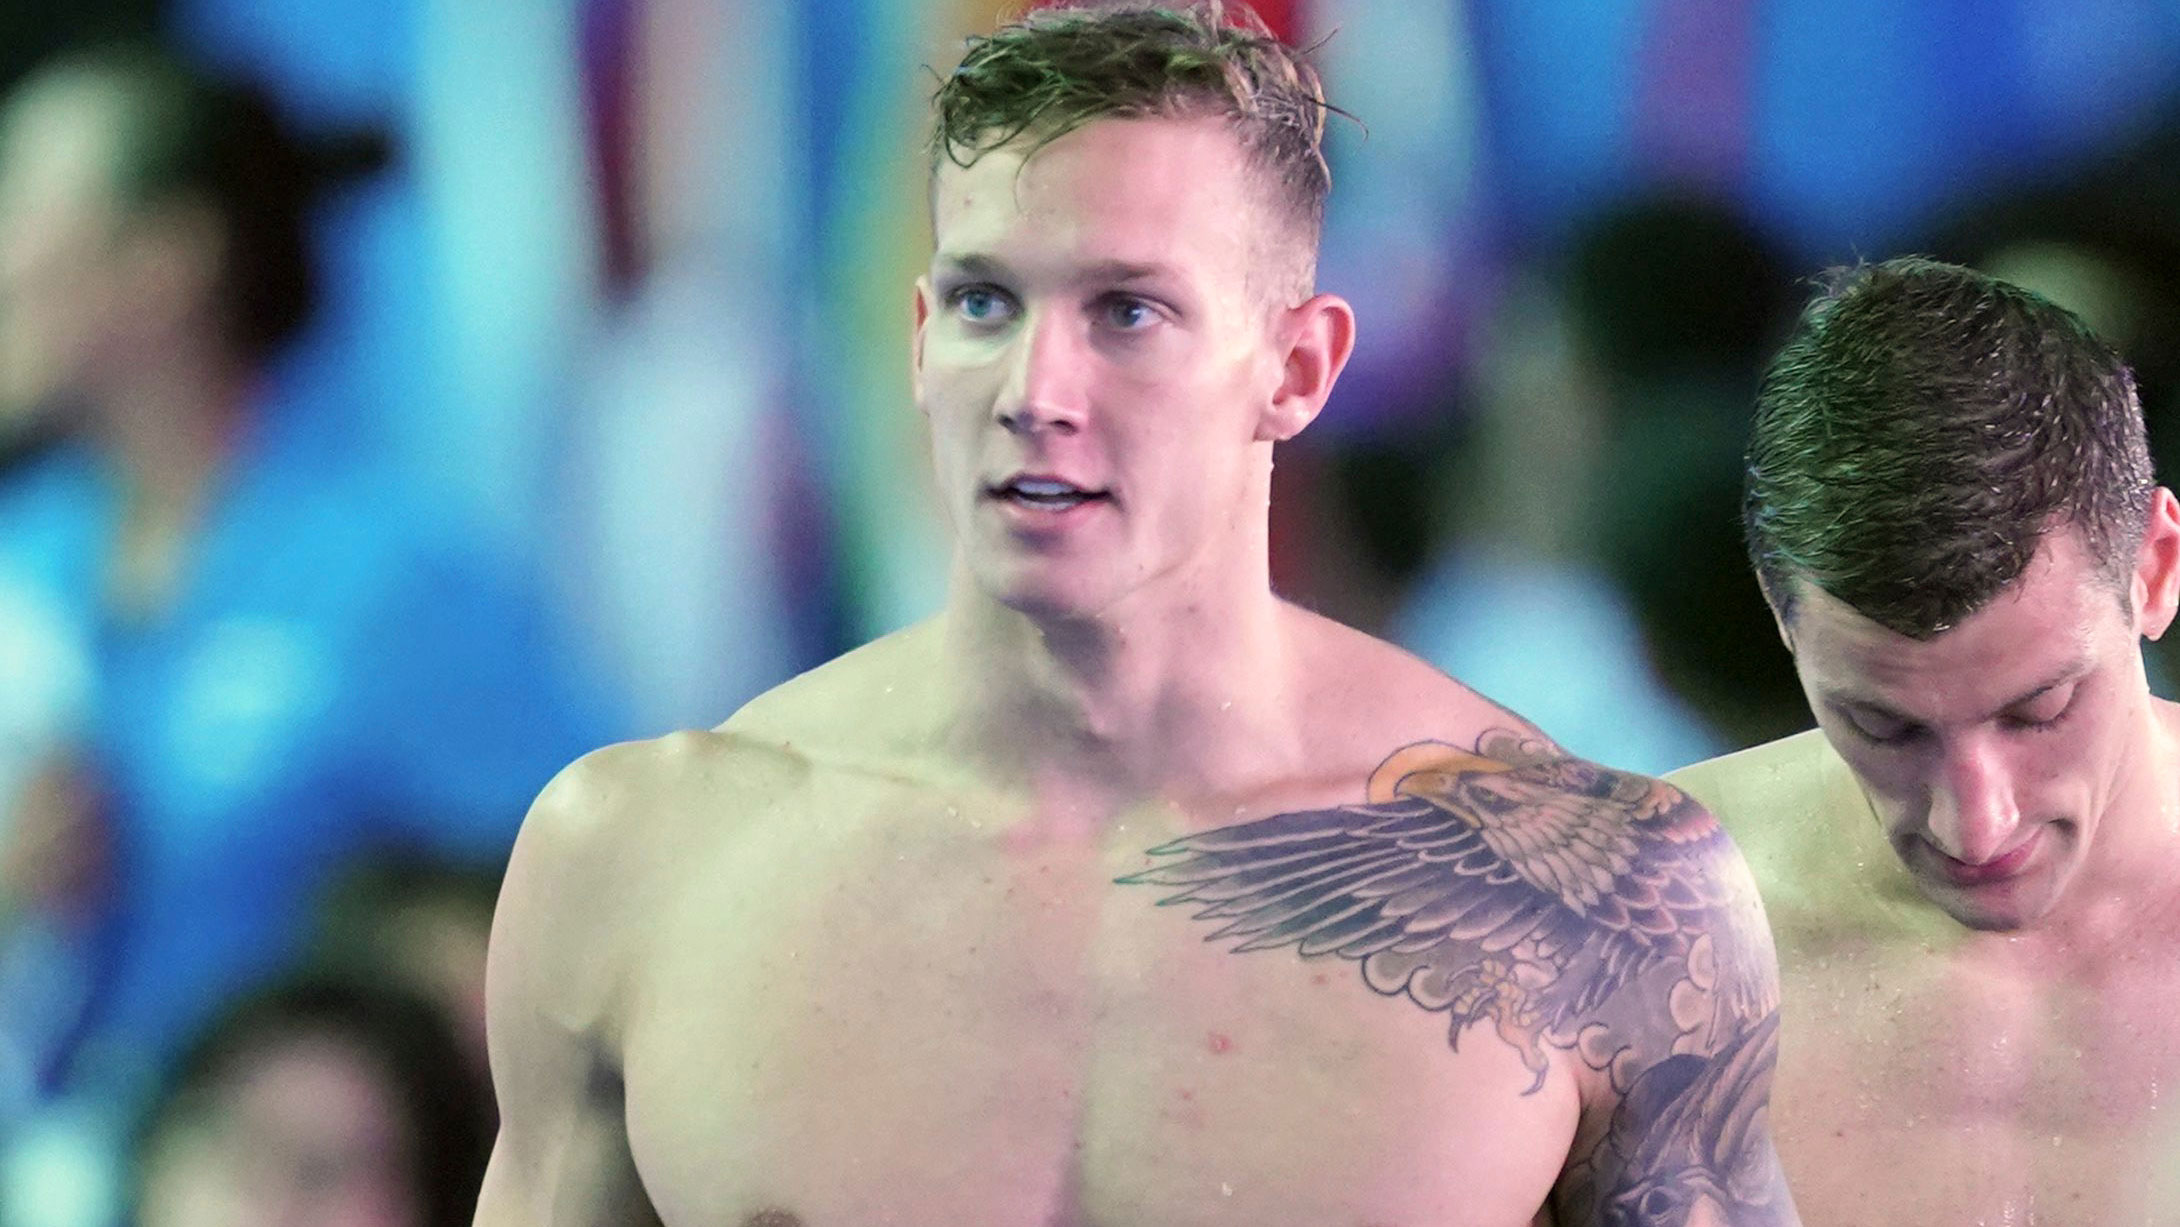 US swimmer Caeleb Dressel breaks two world records in one hour